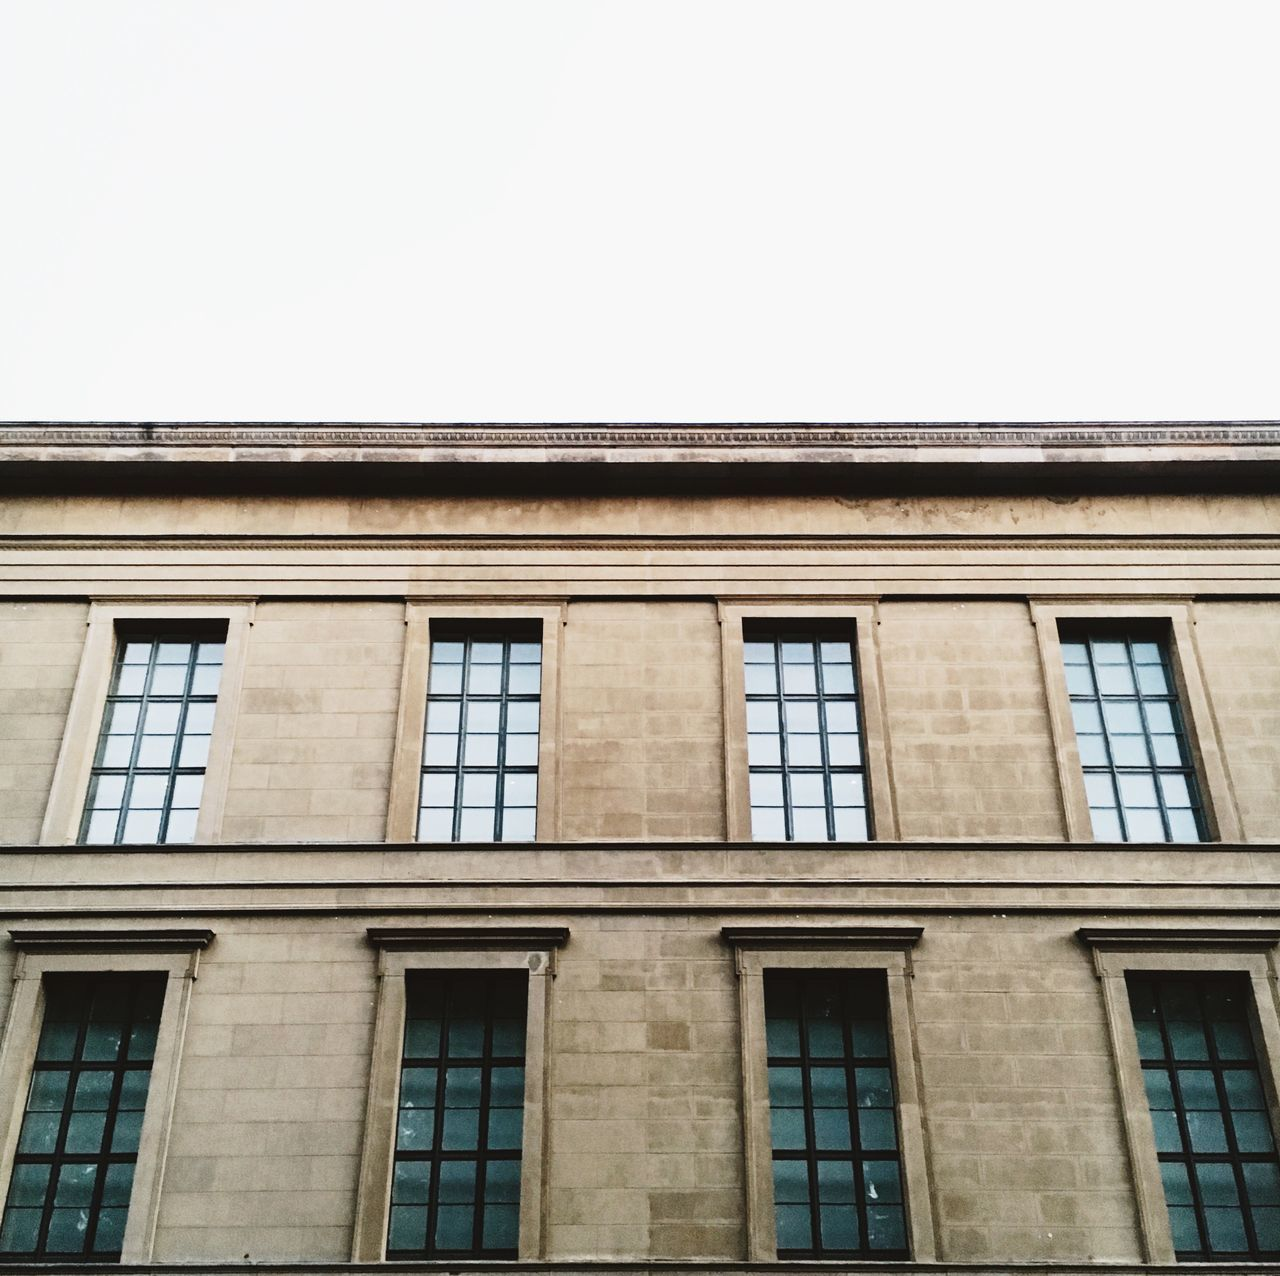 architecture, building exterior, built structure, low angle view, window, day, clear sky, no people, outdoors, sky